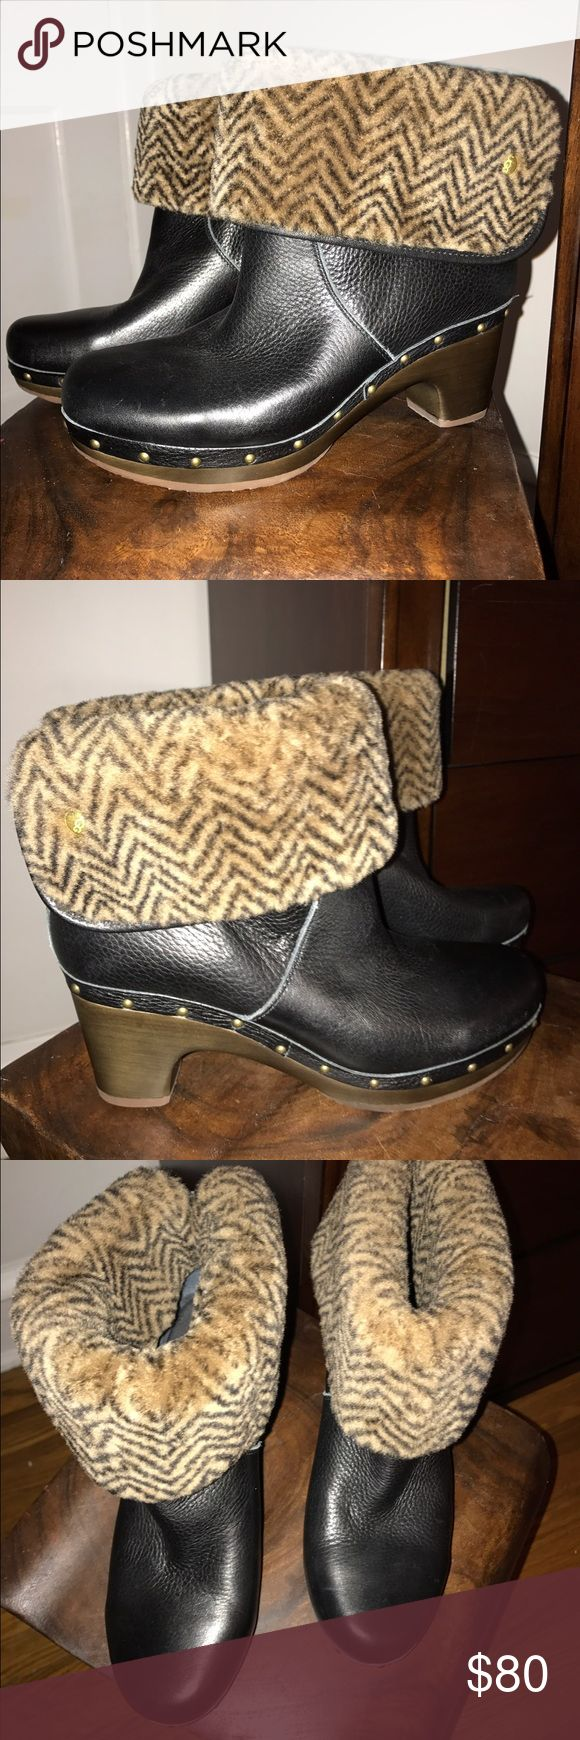 Ugg Lynnea Boots Never worn black leather Ugg Lynnea Boots, 2 1/2 inch heel. Leather and shearling lining. UGG Shoes Winter & Rain Boots